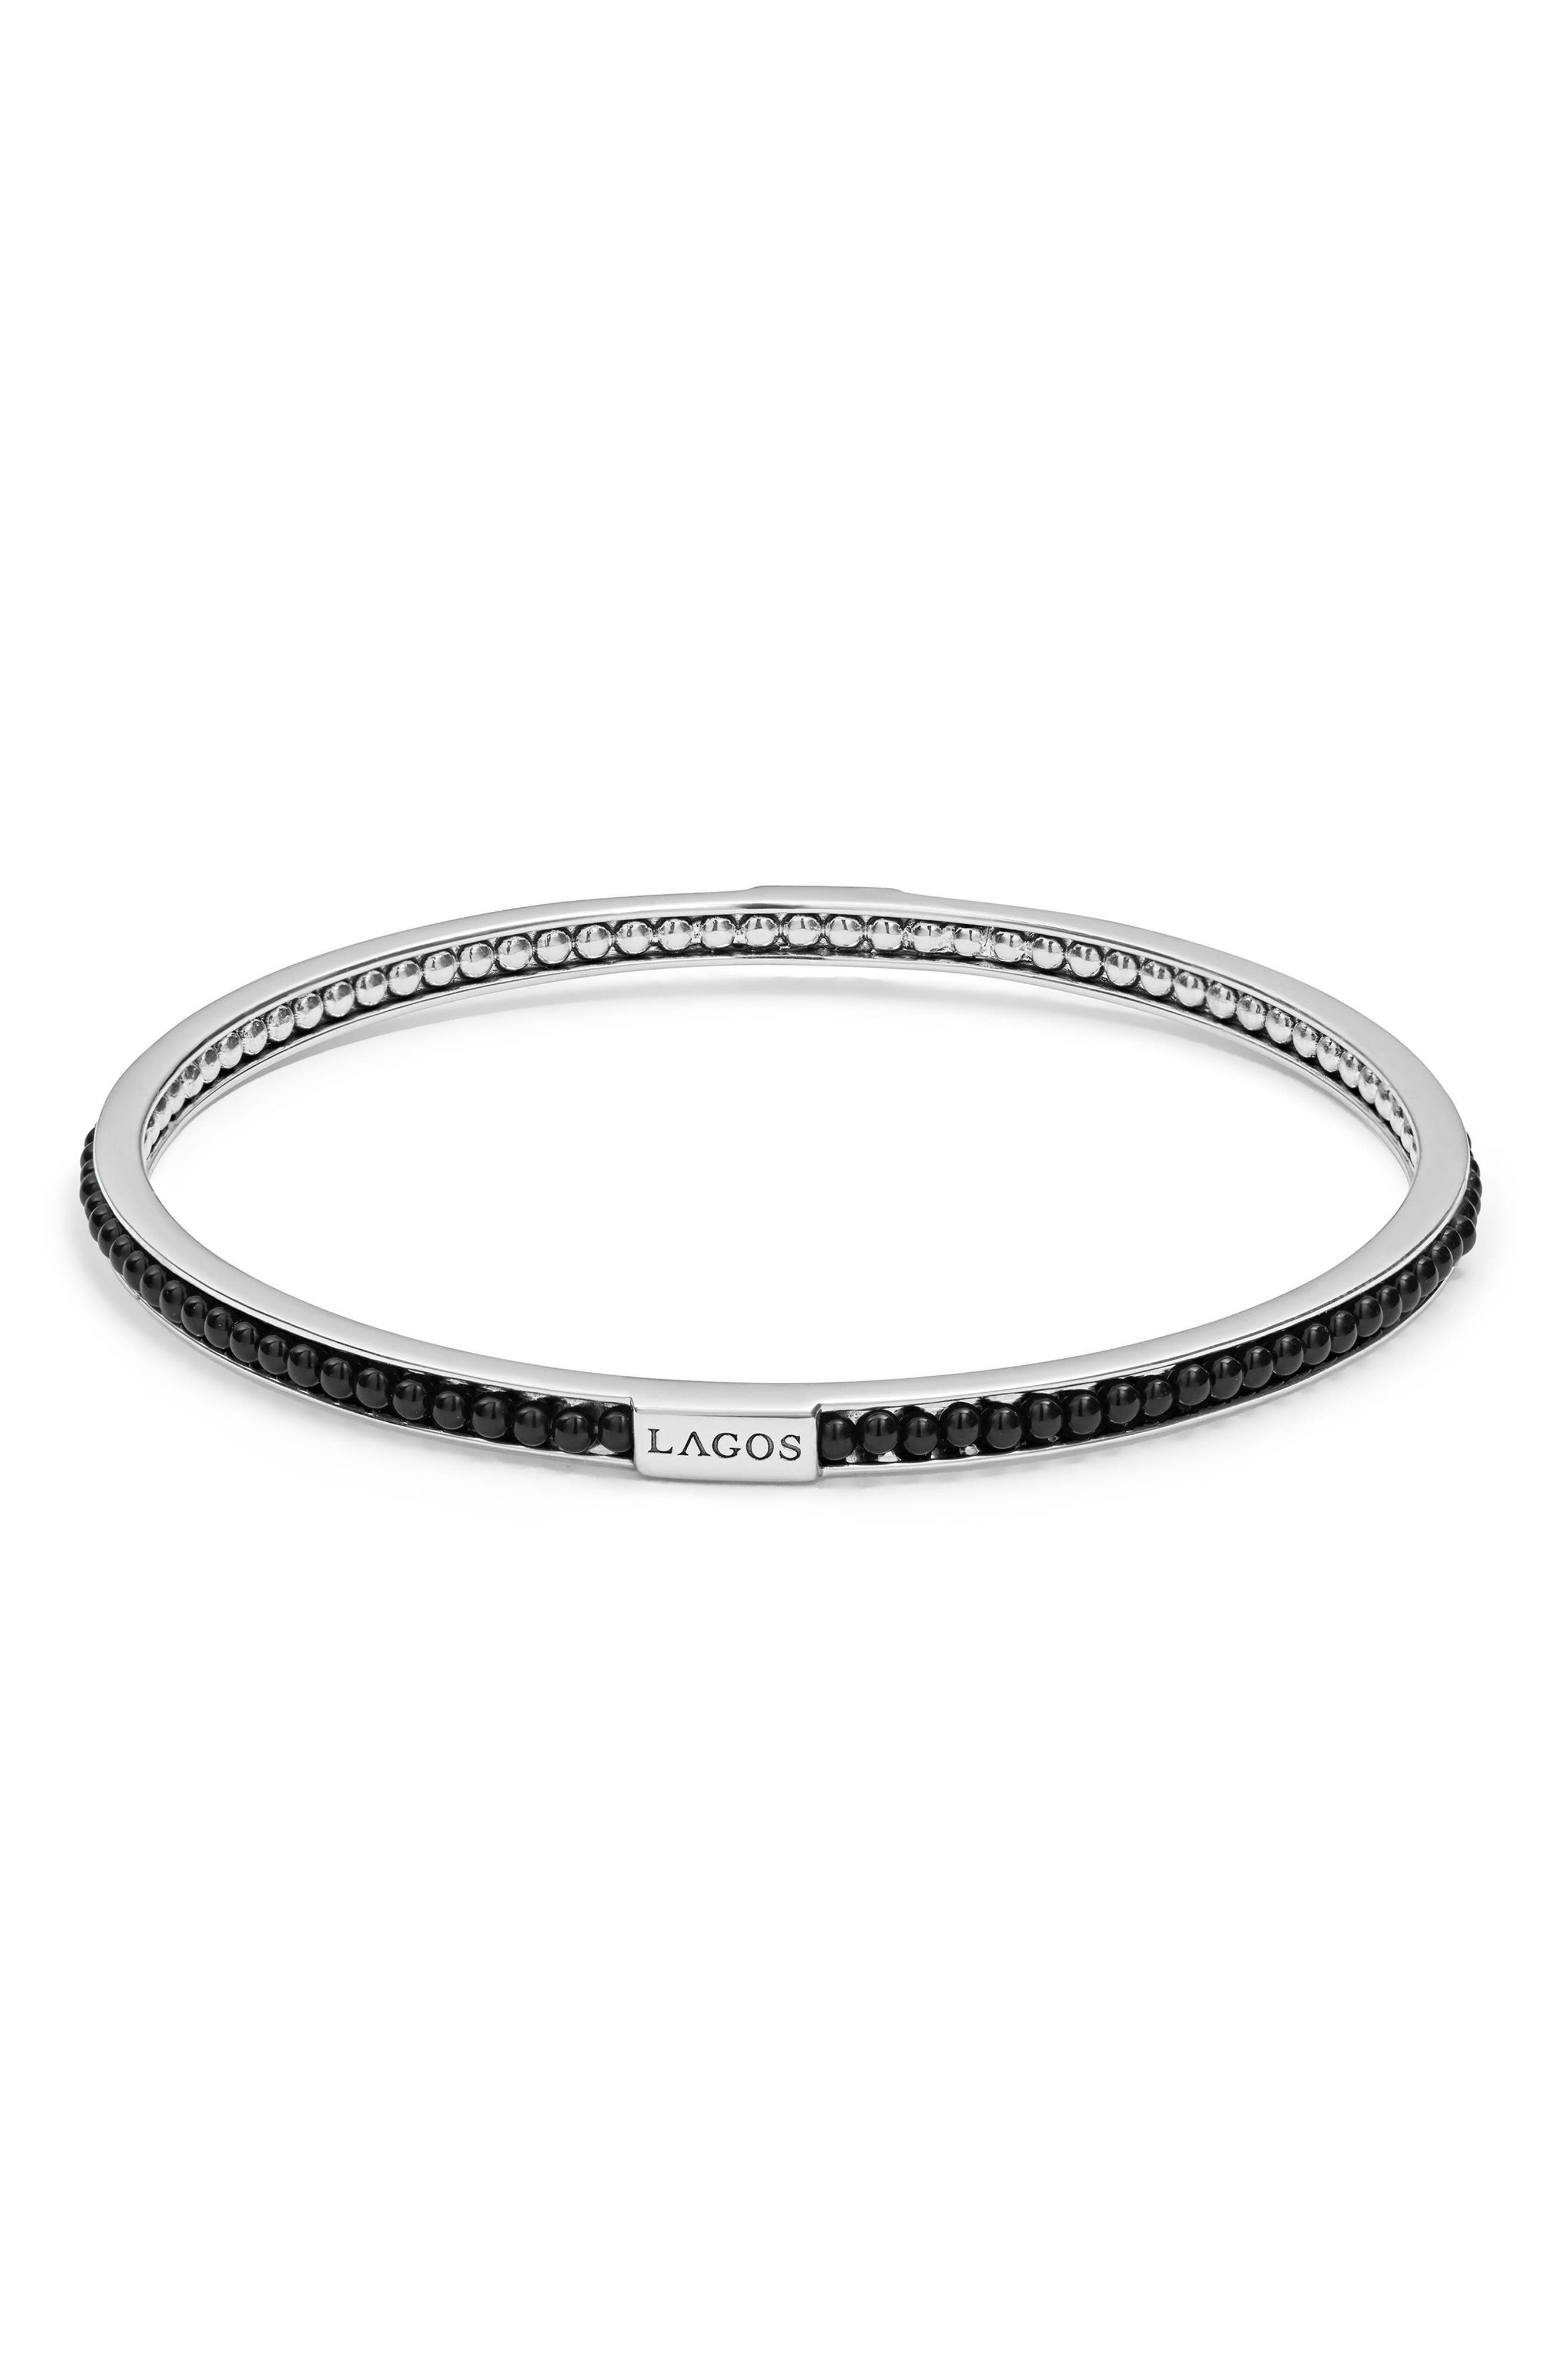 Caviar Icon Beaded Bangle Bracelet,                         Main,                         color, SILVER/ ONYX